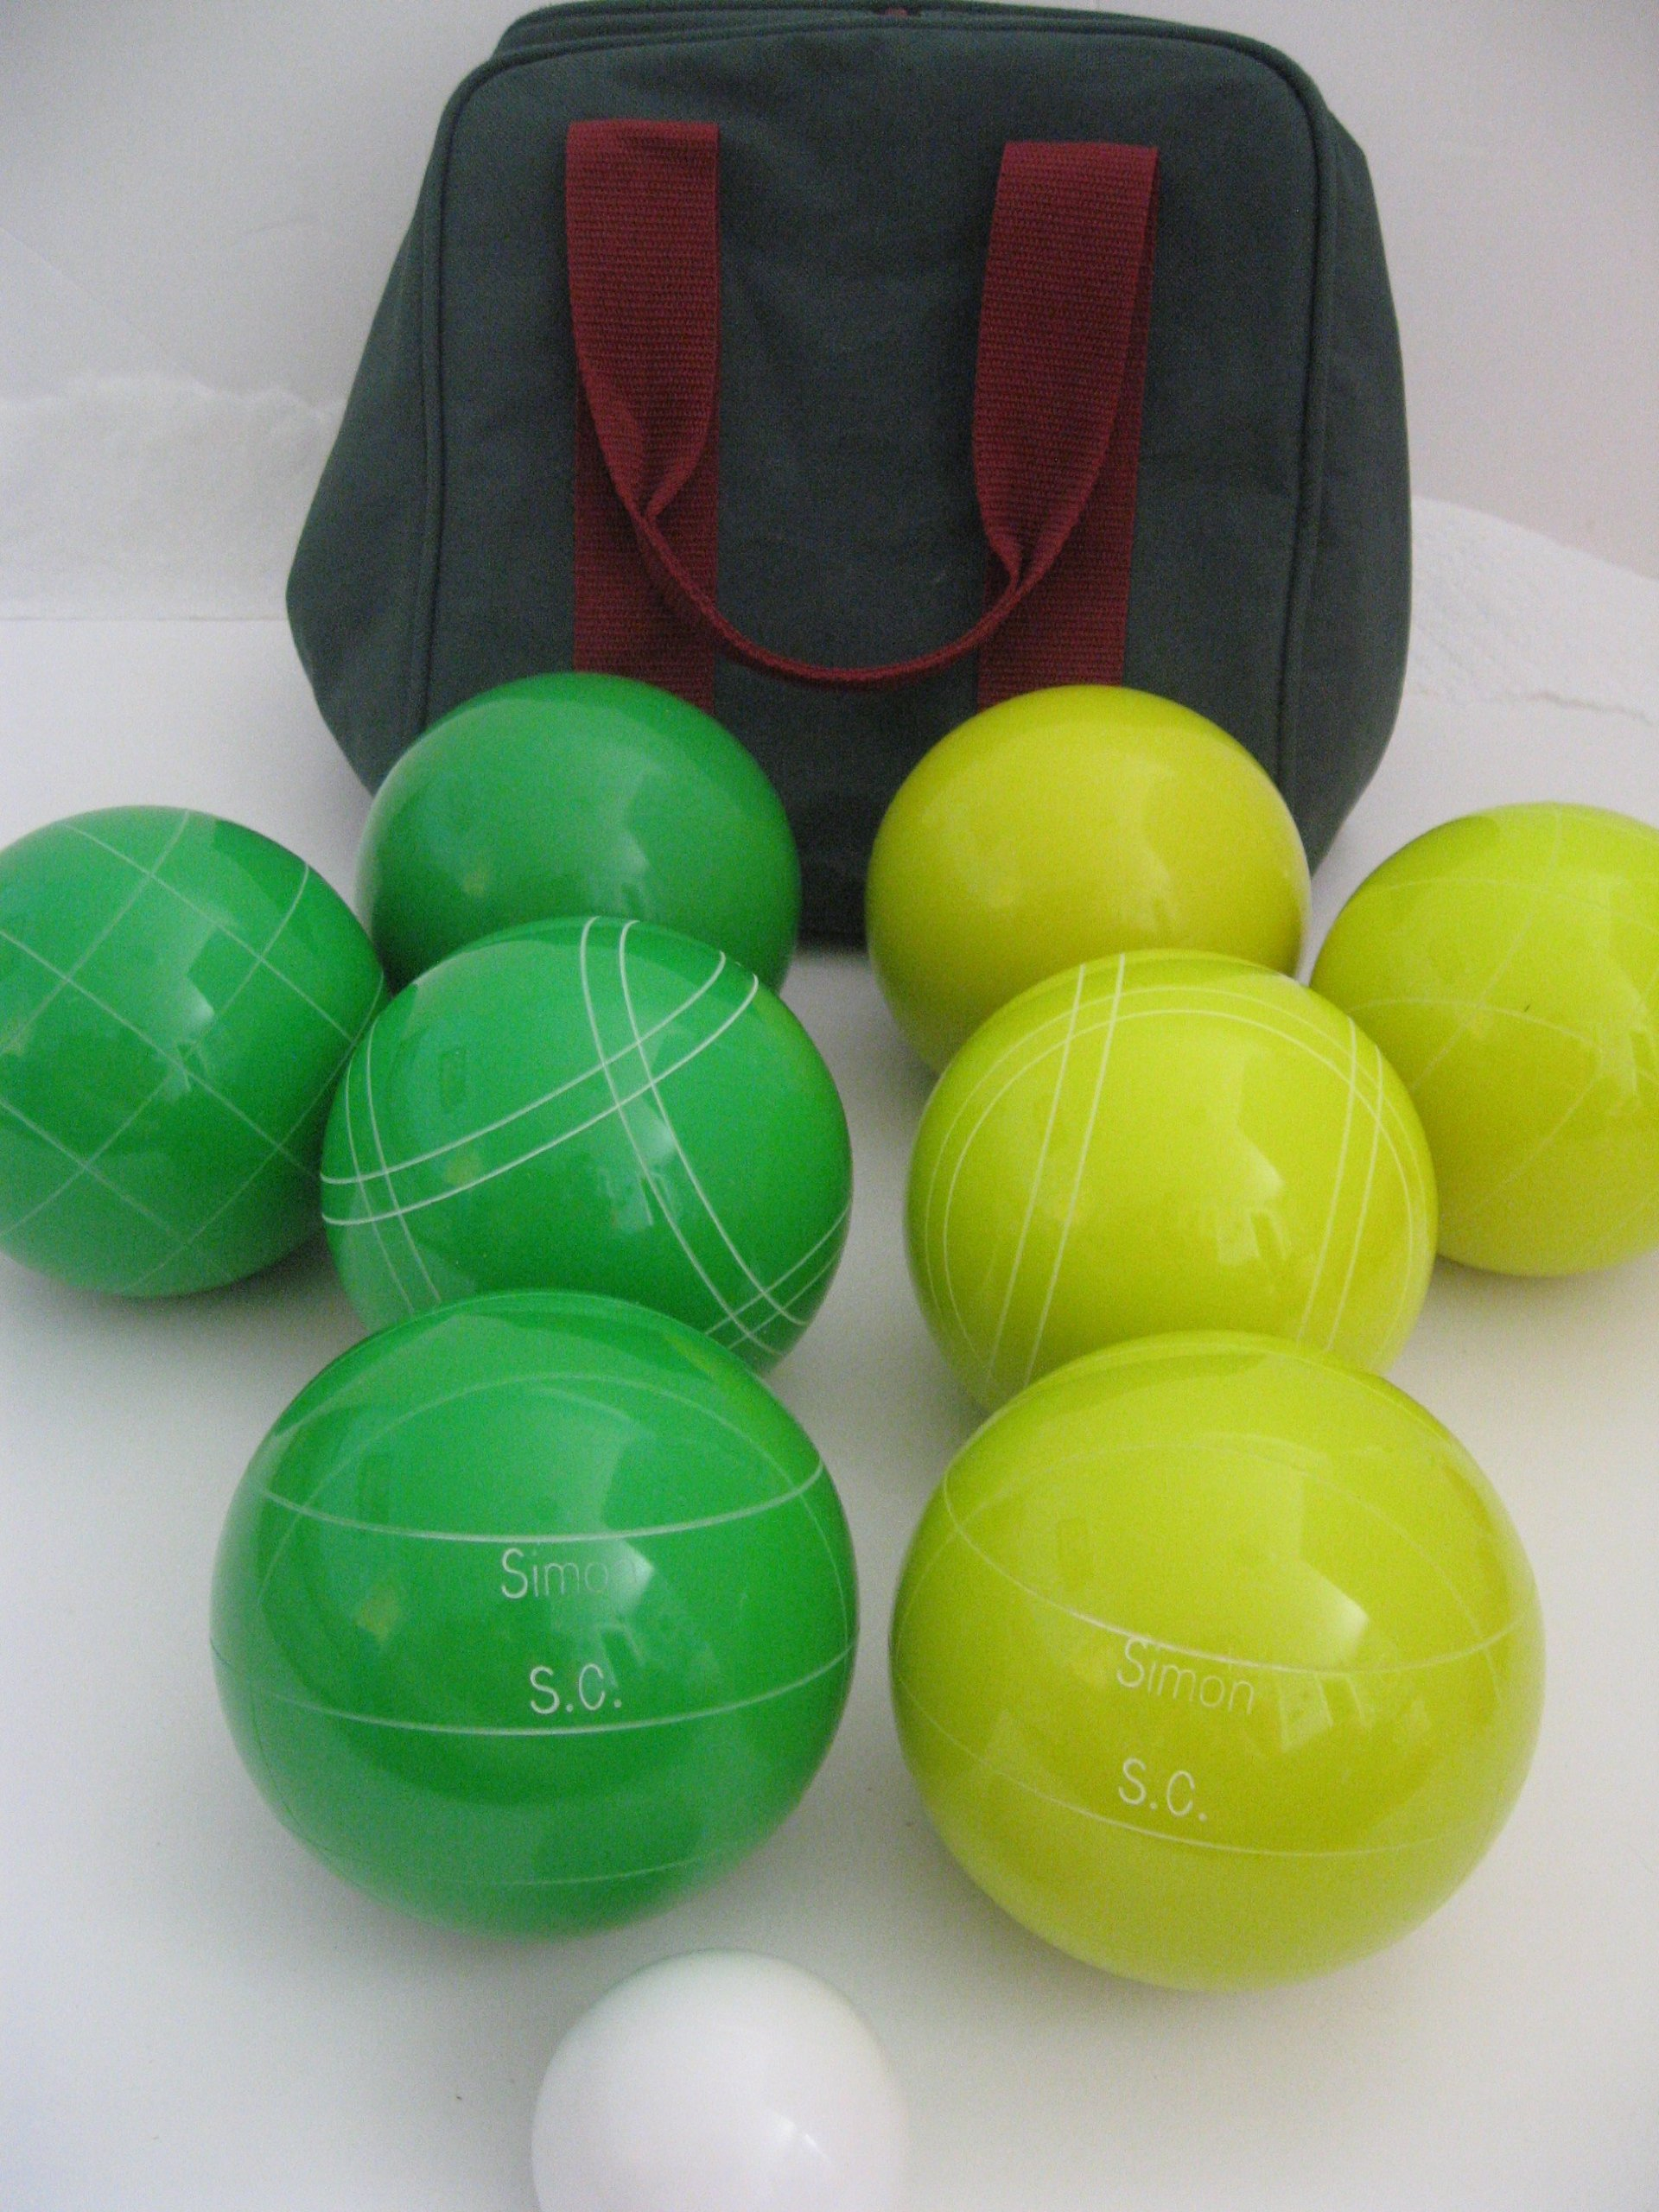 Premium Quality Engraved Bocce Package - 110mm Epco Yellow and Green Balls with Engraving by Epco